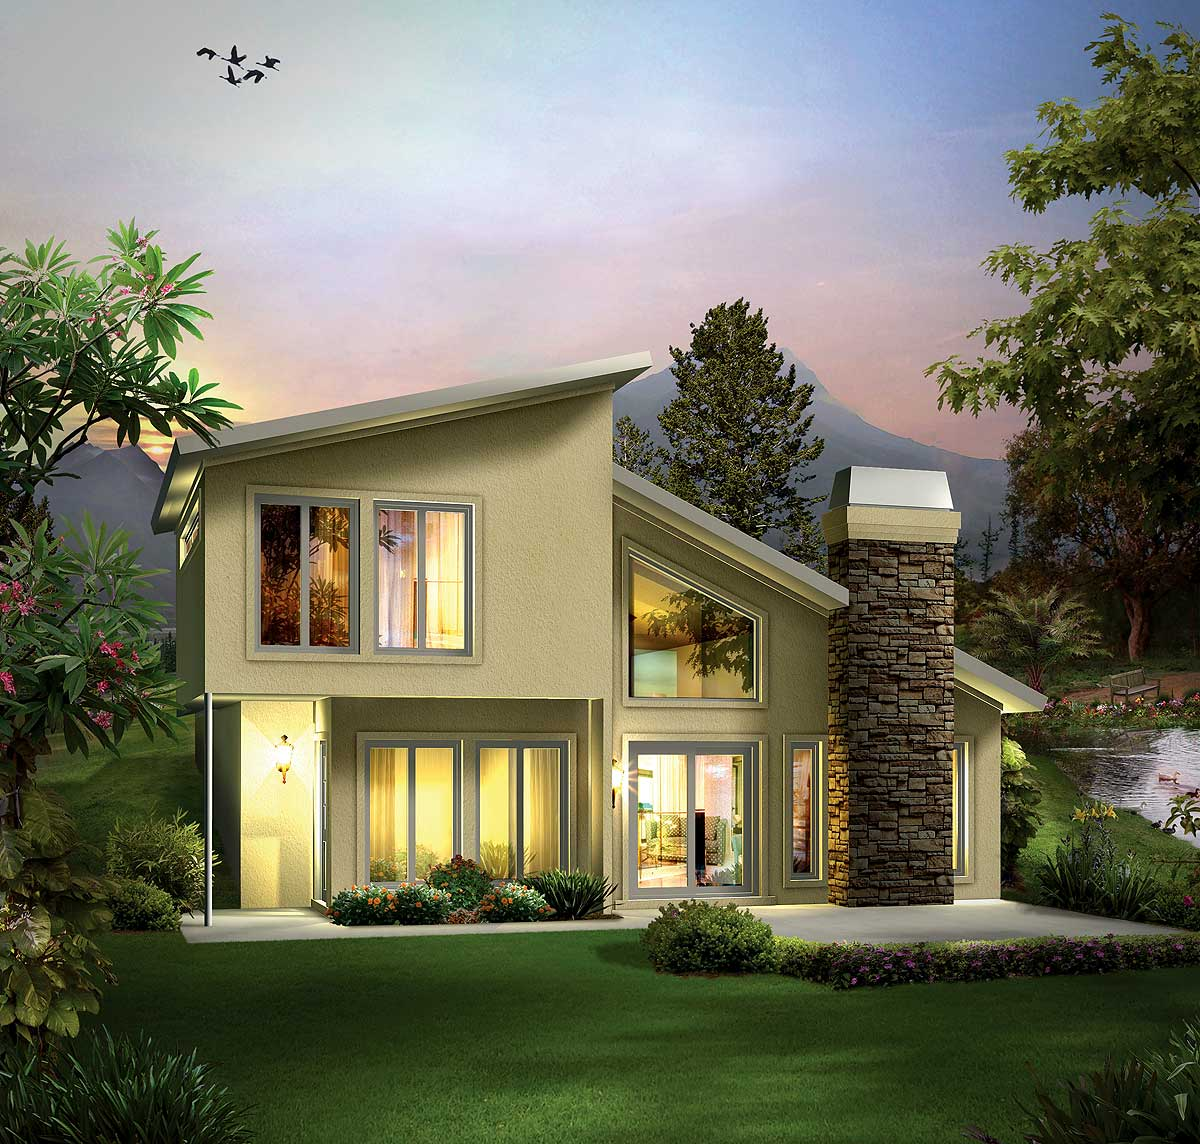 Architectural designs for Earth sheltered homes cost